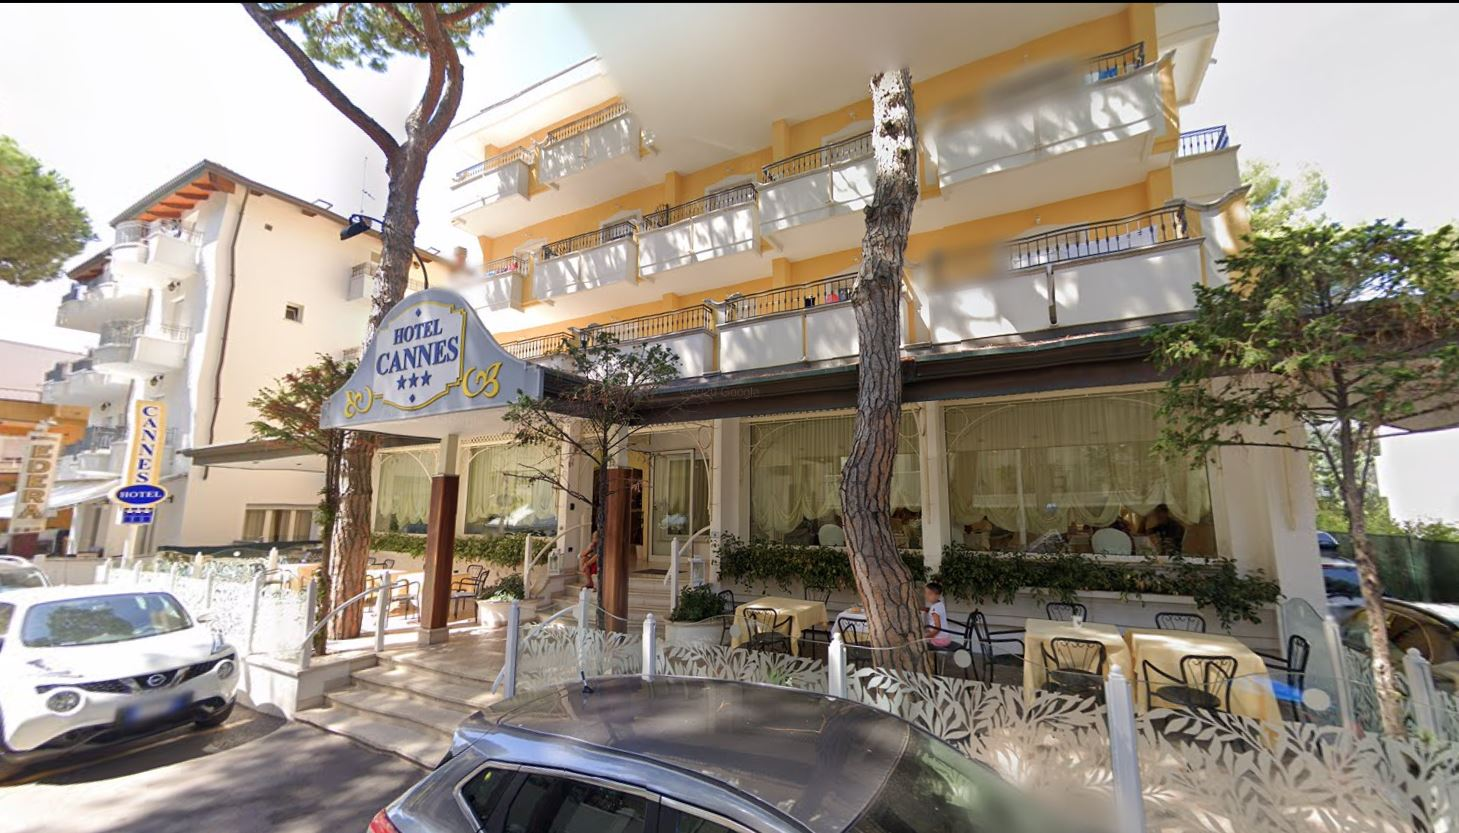 Hotel Cannes